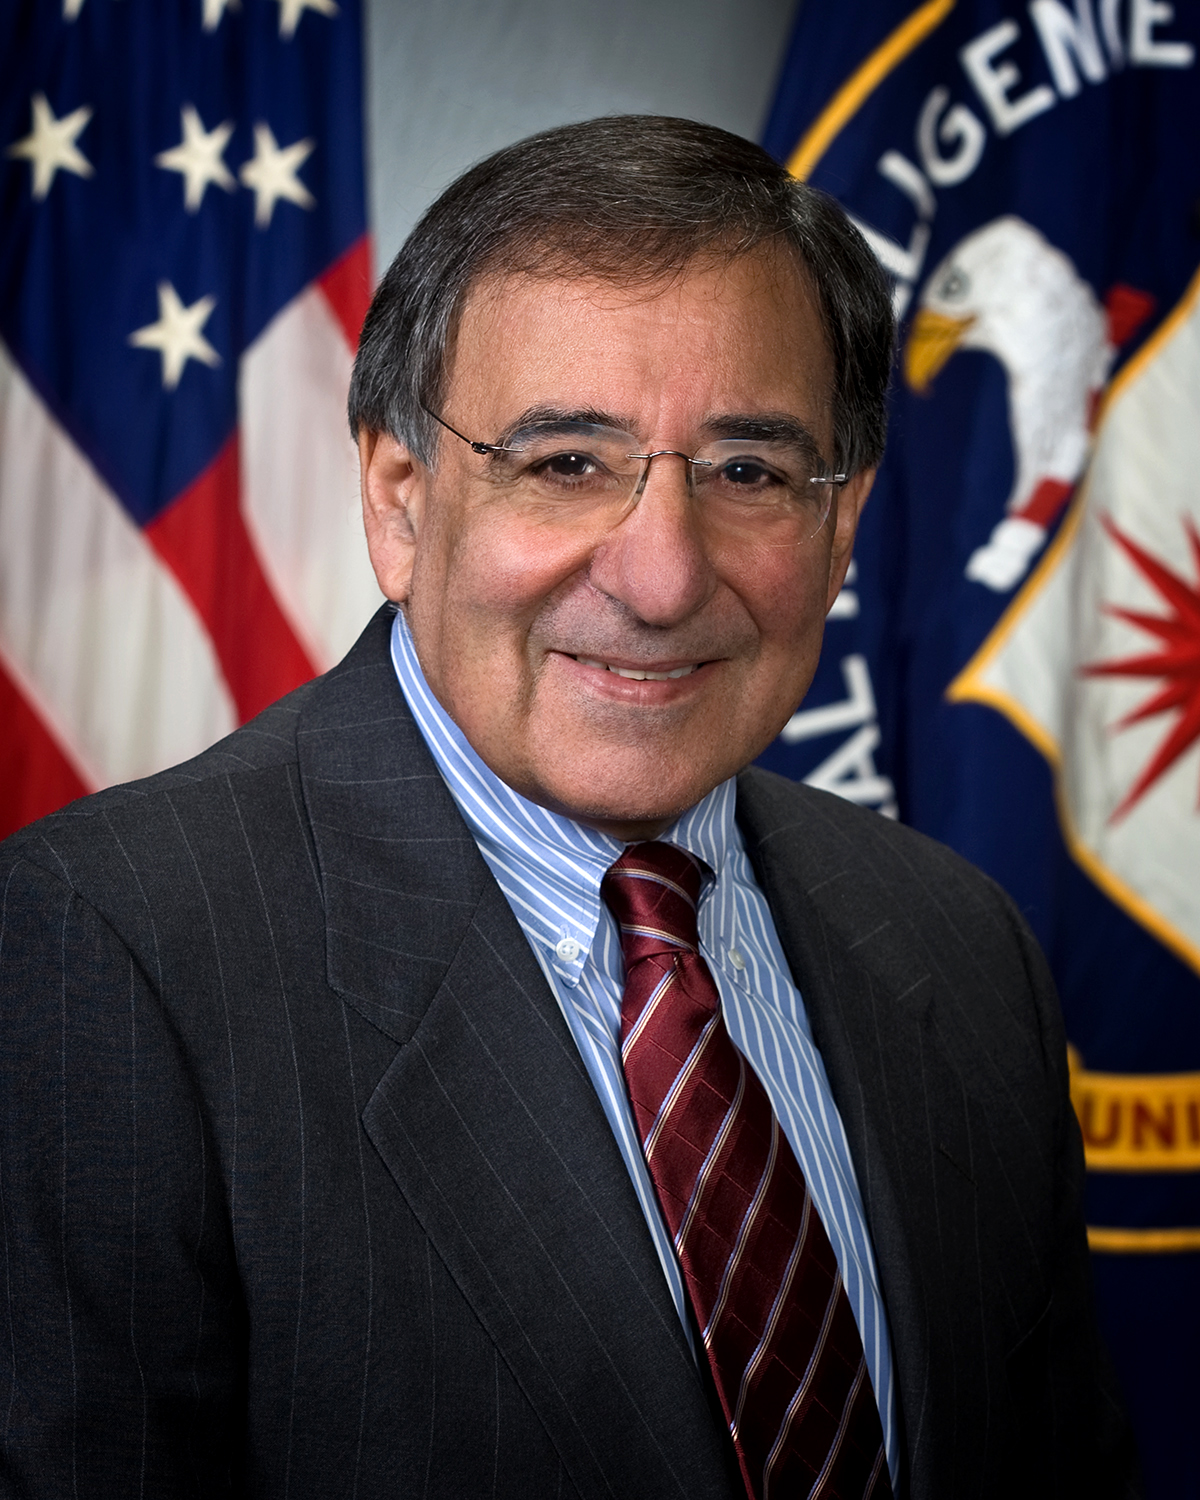 - Leon_Panetta_official_portrait